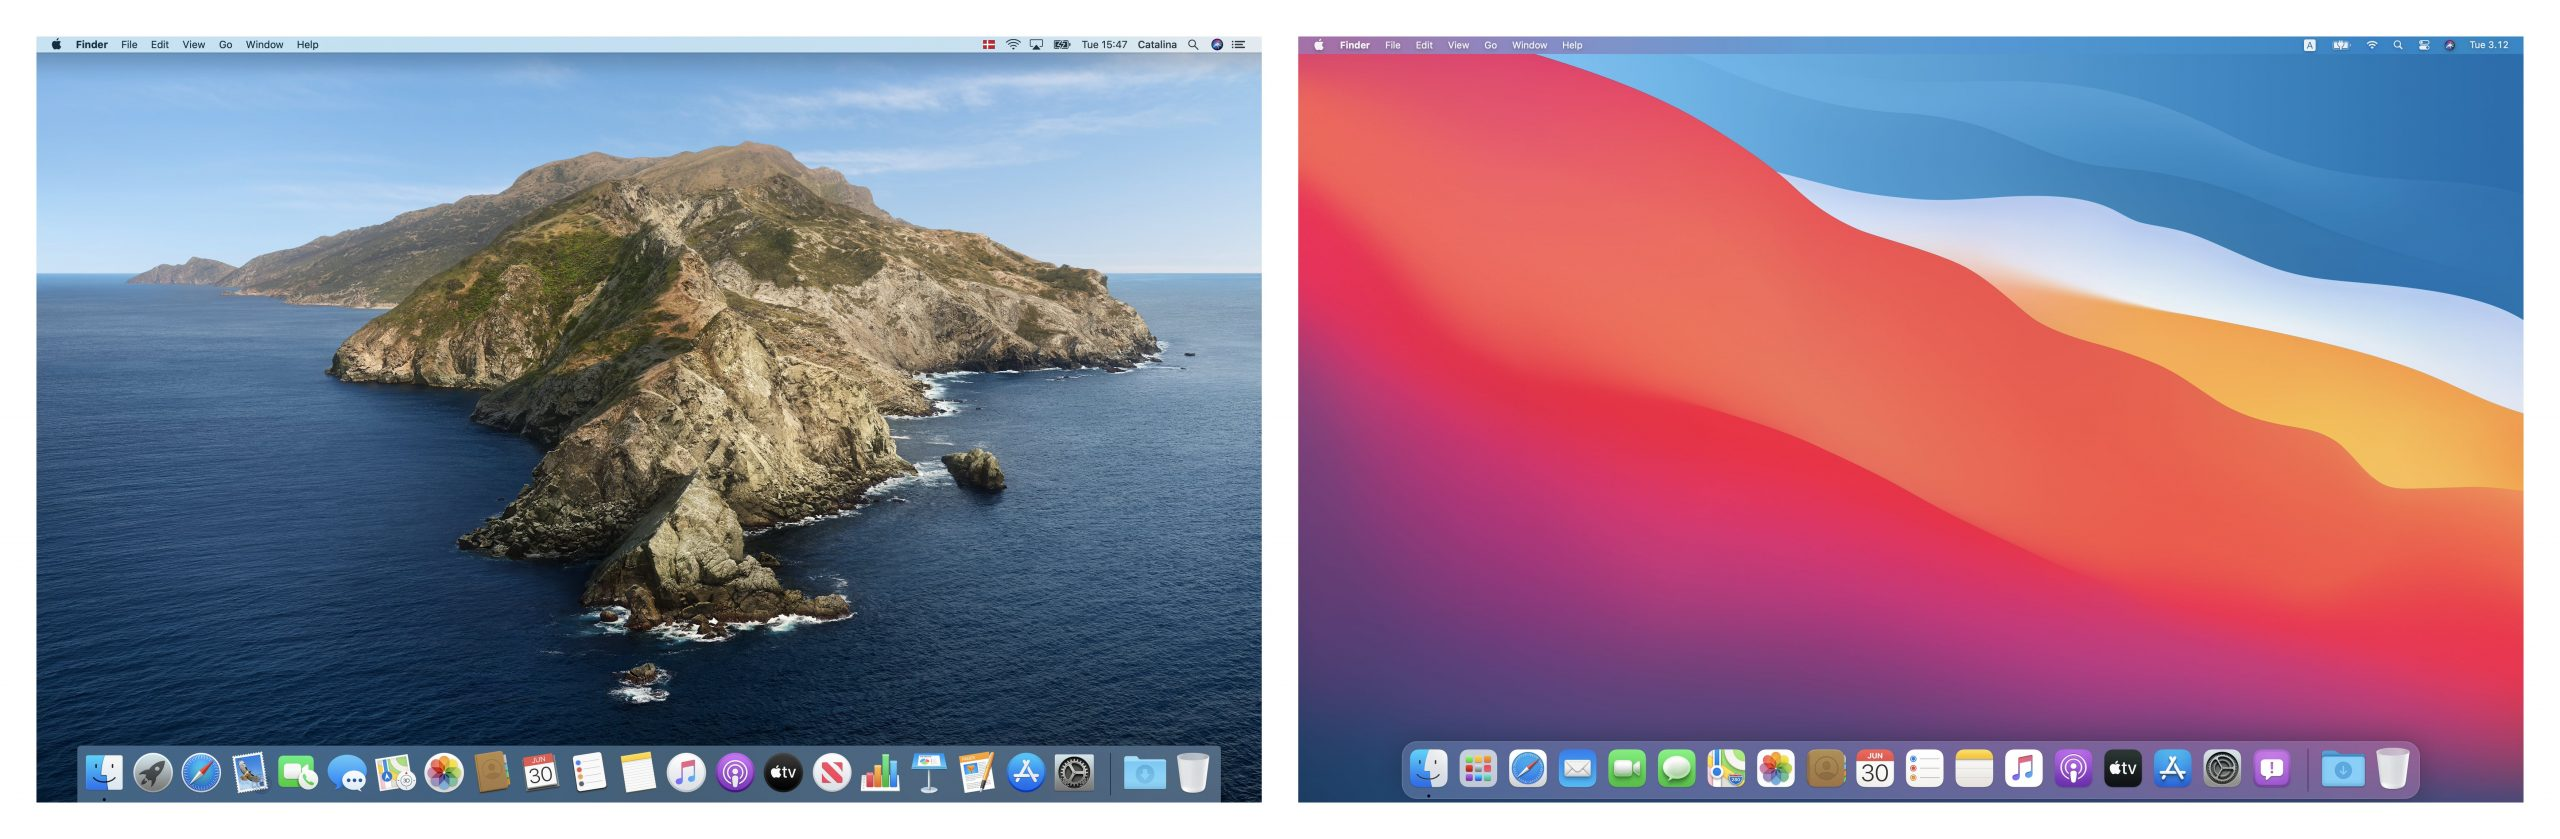 Developer's Visual Comparison of macOS Catalina and Big Sur Offers Closer Look at Apple's UI Redesign for Macs